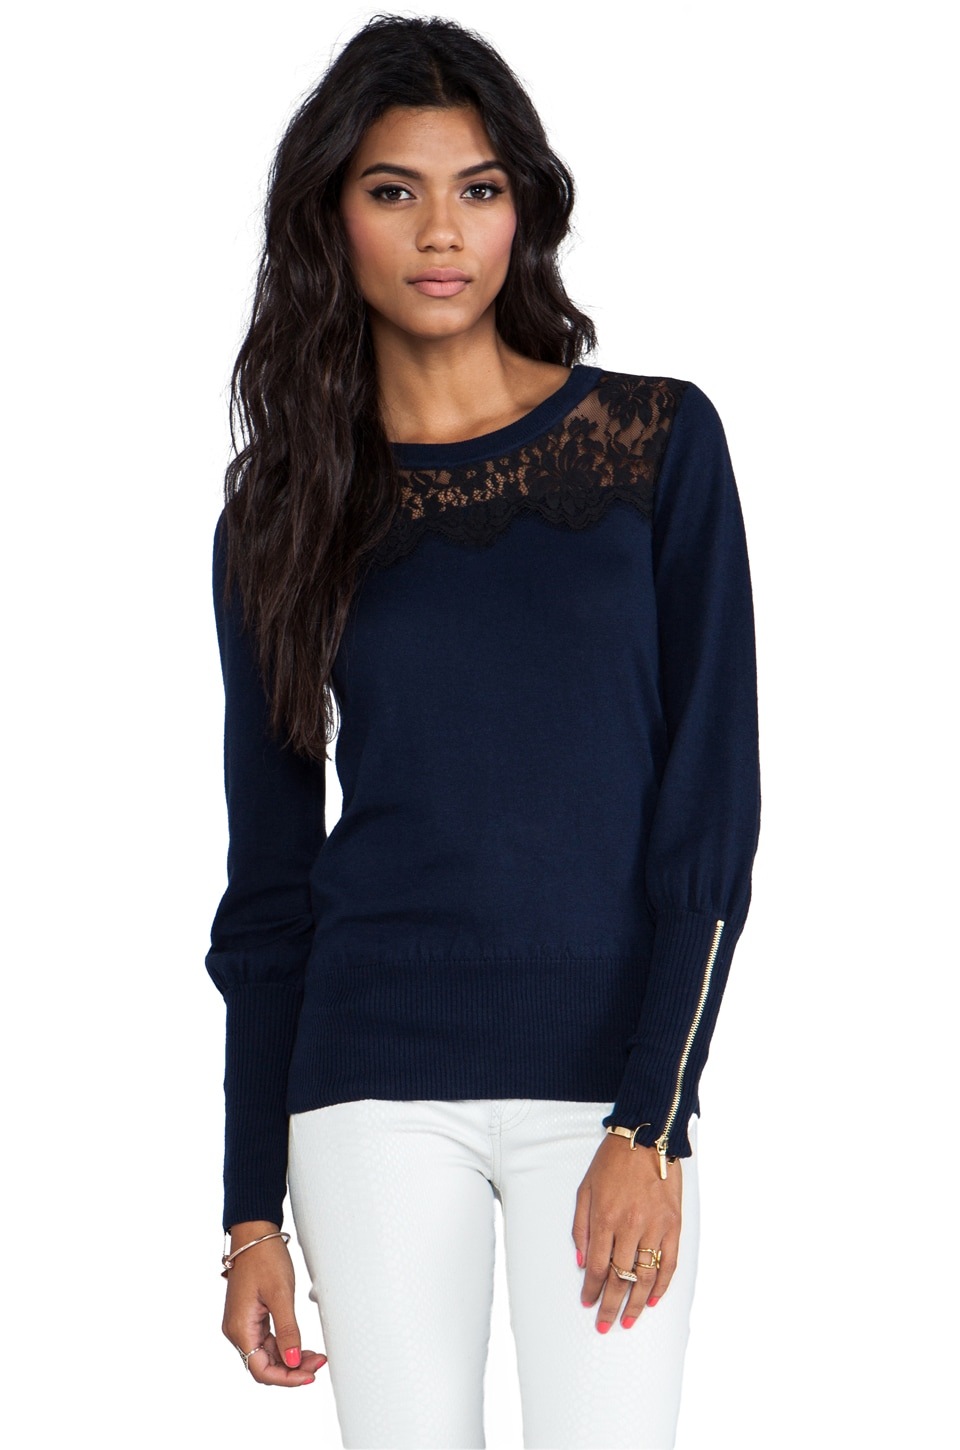 Juicy Couture Nicola Pullover in Regal